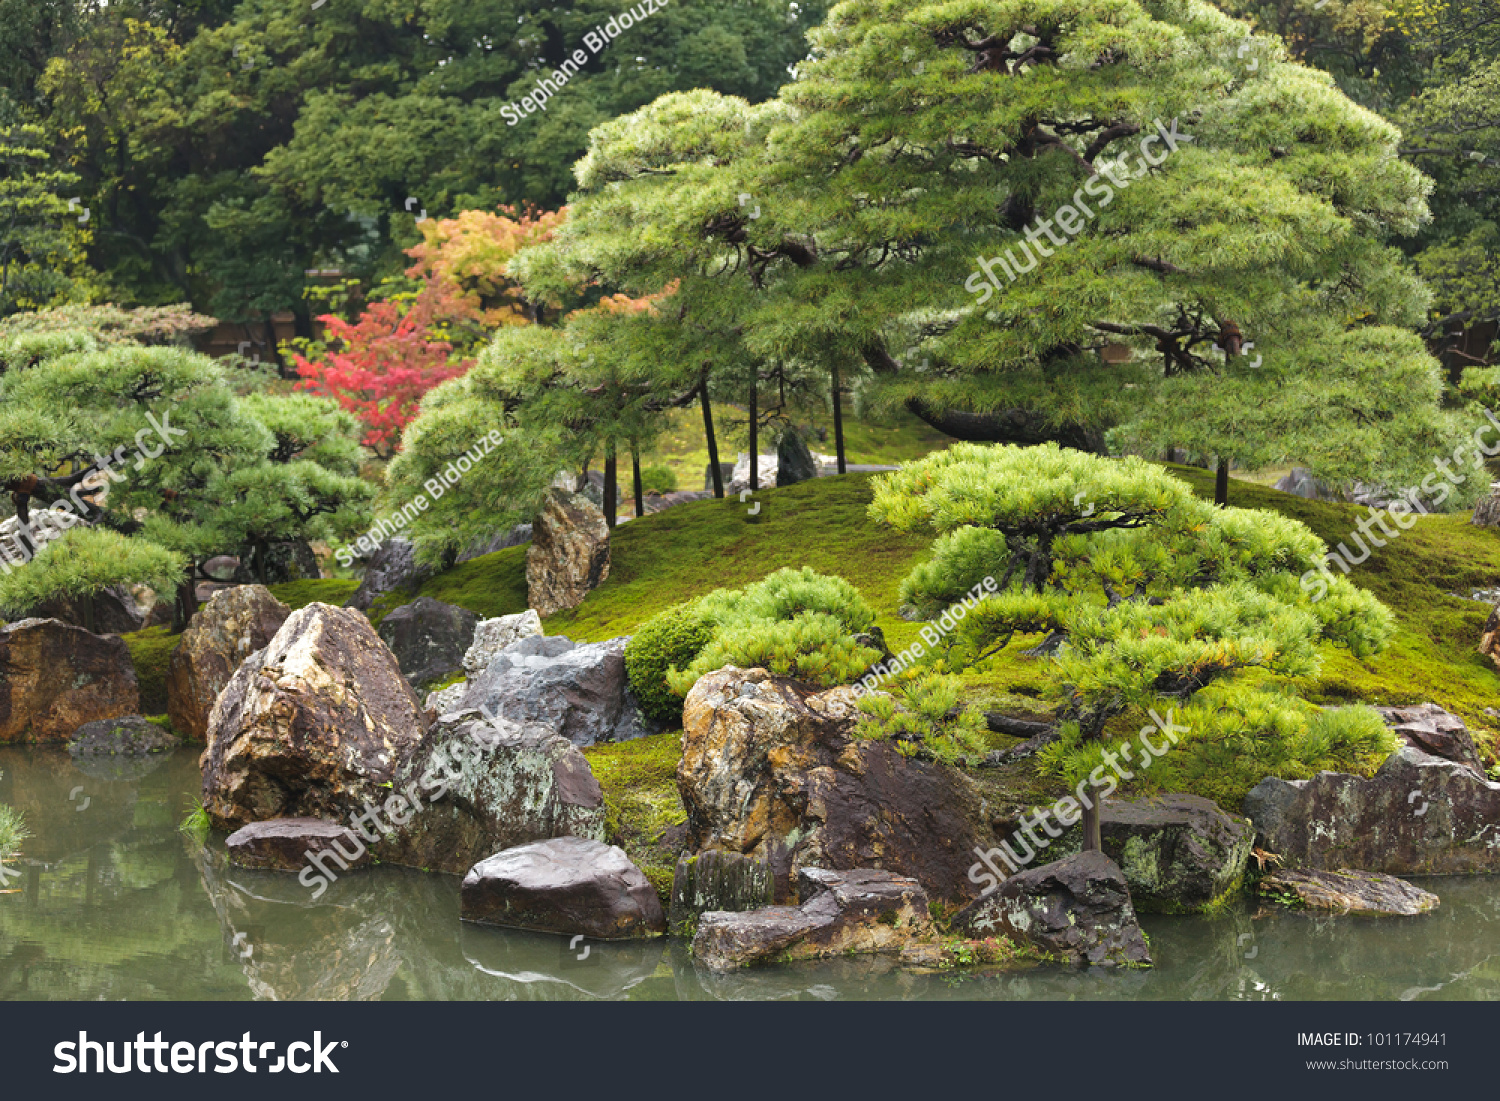 Traditional japanese zen garden in kyoto japan stock for Traditional japanese garden